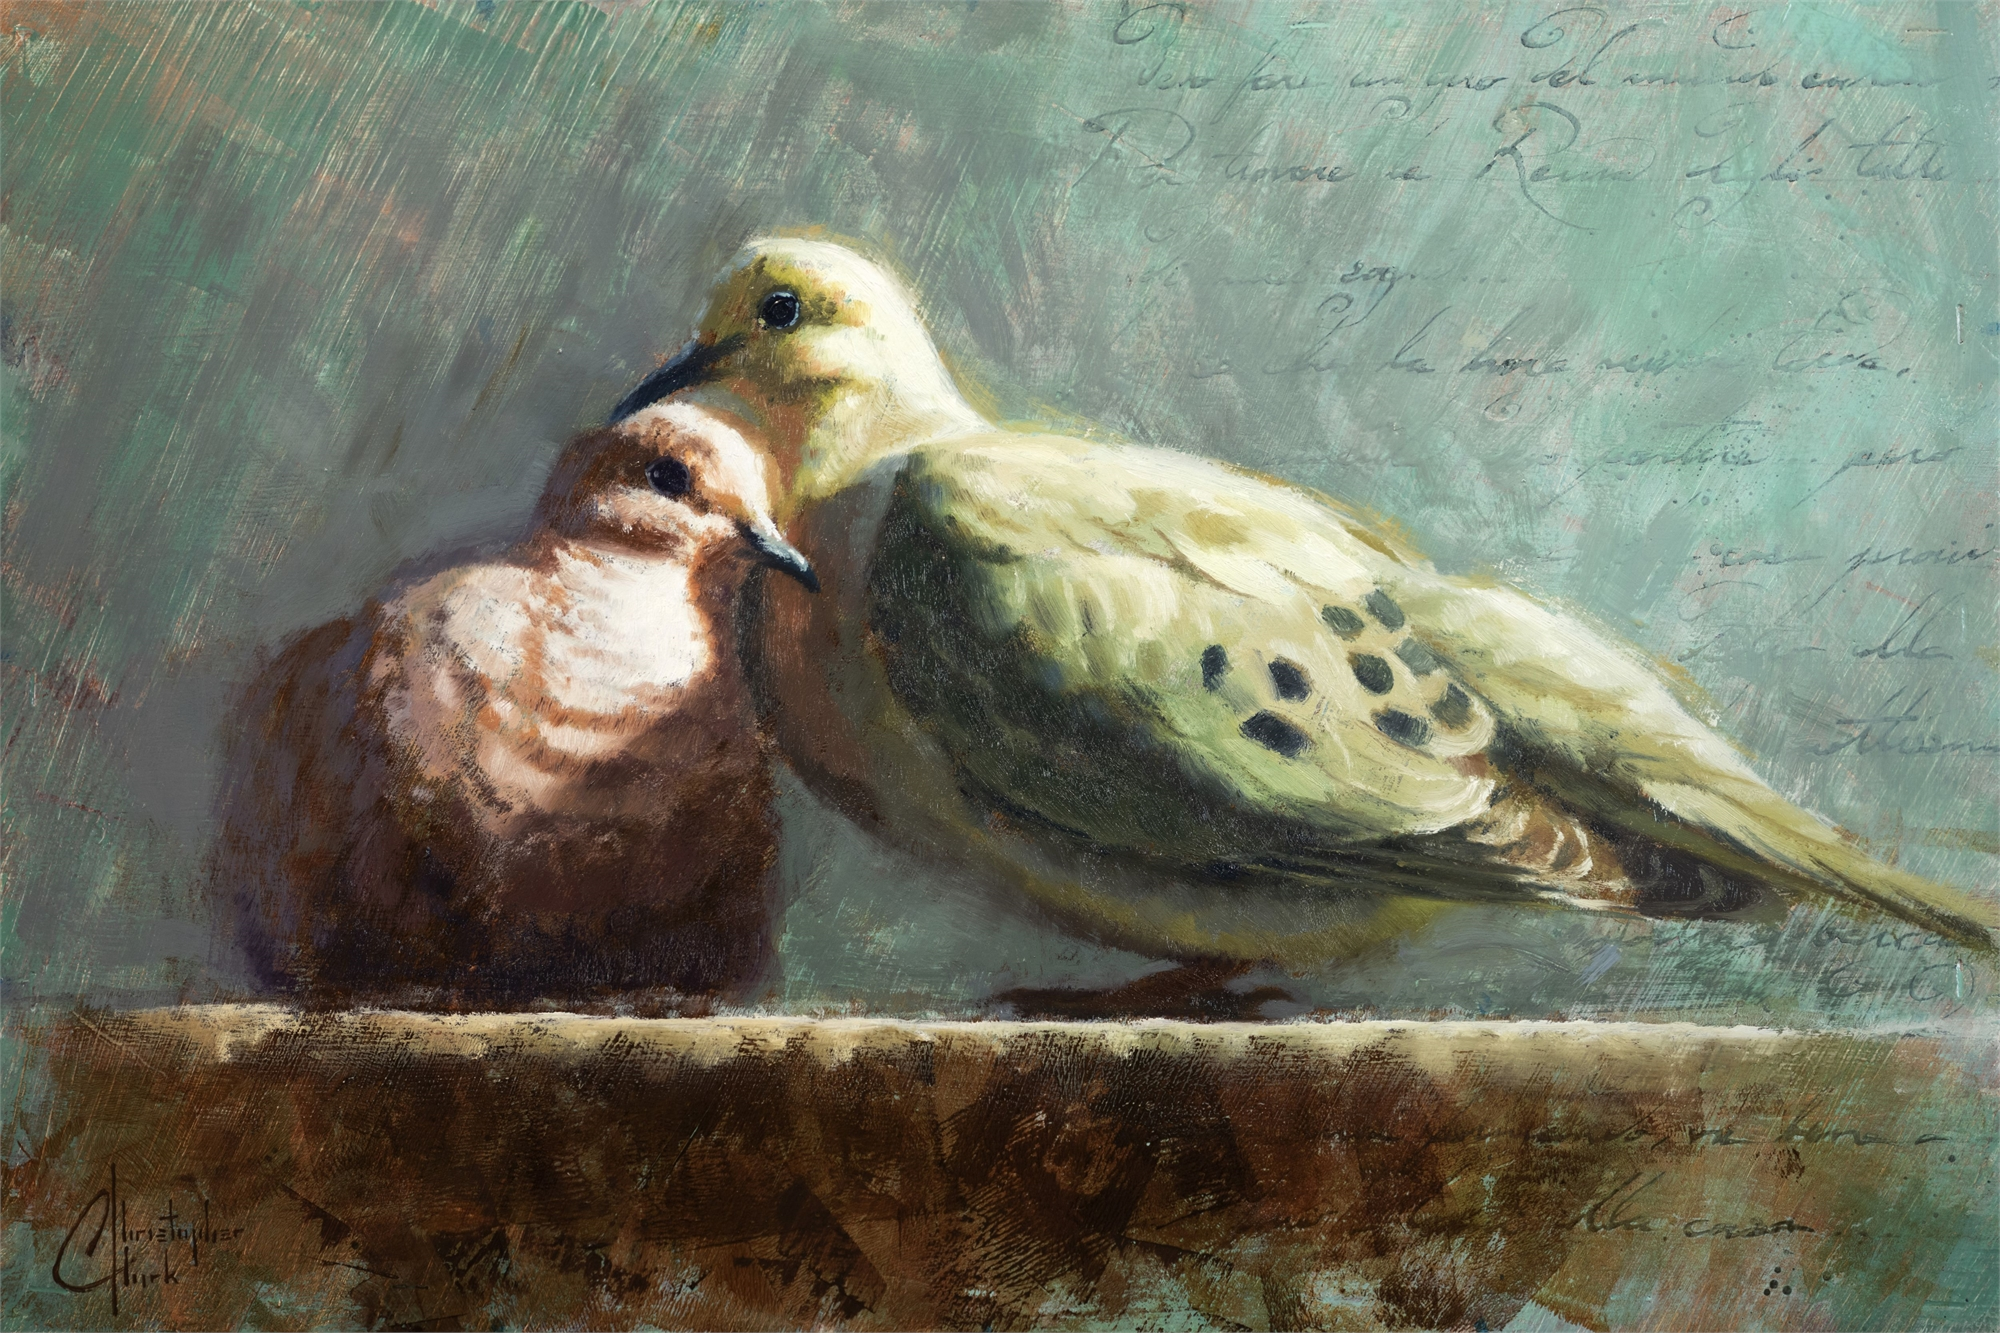 Doves in Love by Christopher Clark